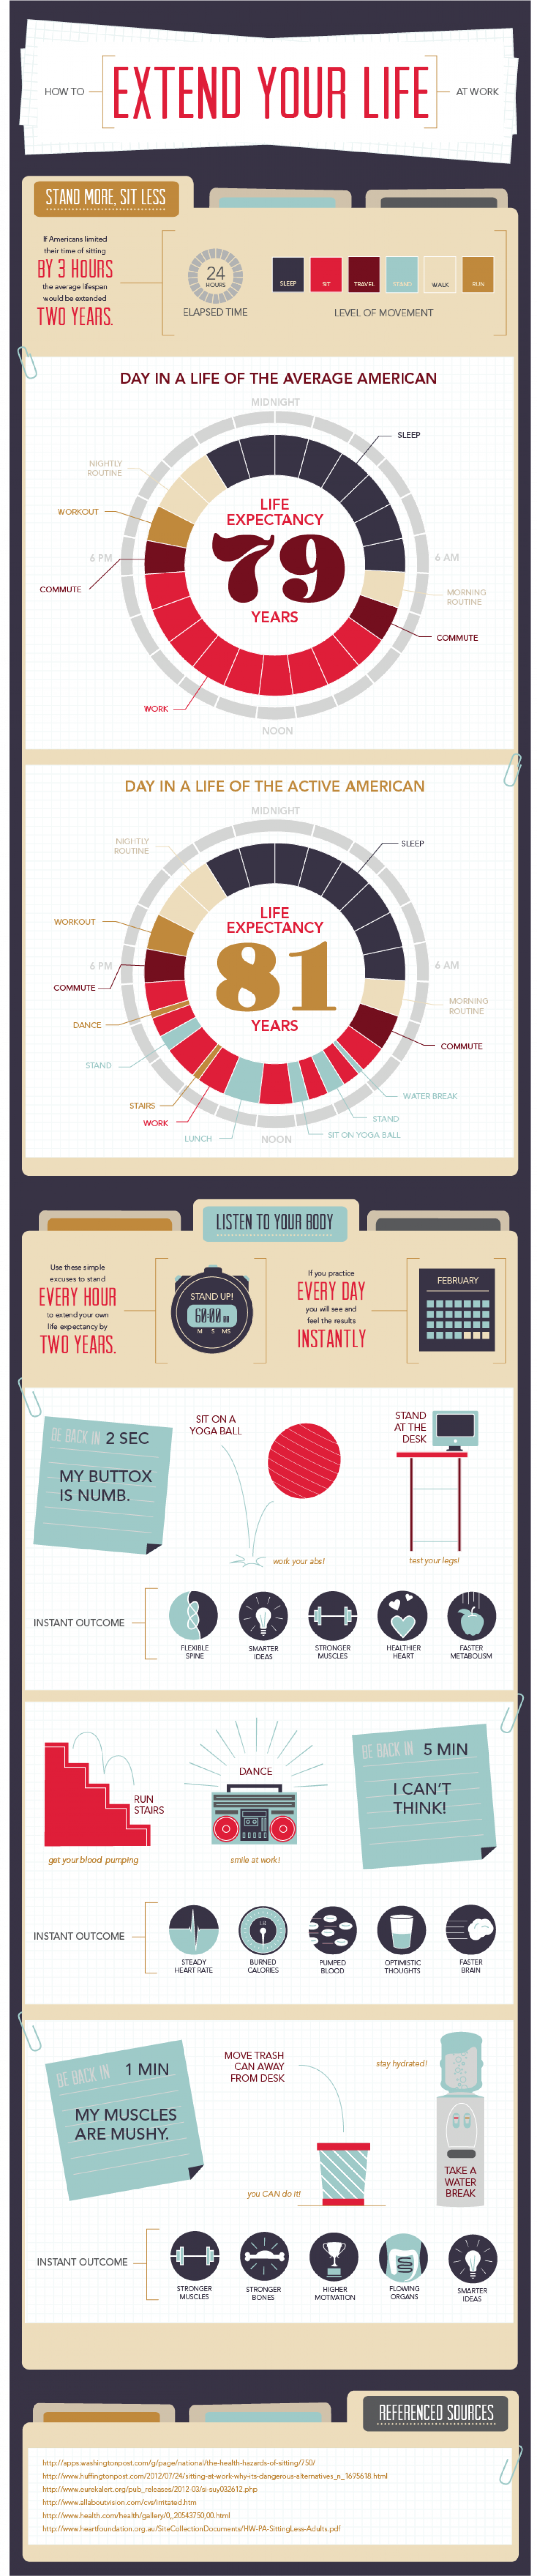 How to Extend Your Life at Work Infographic